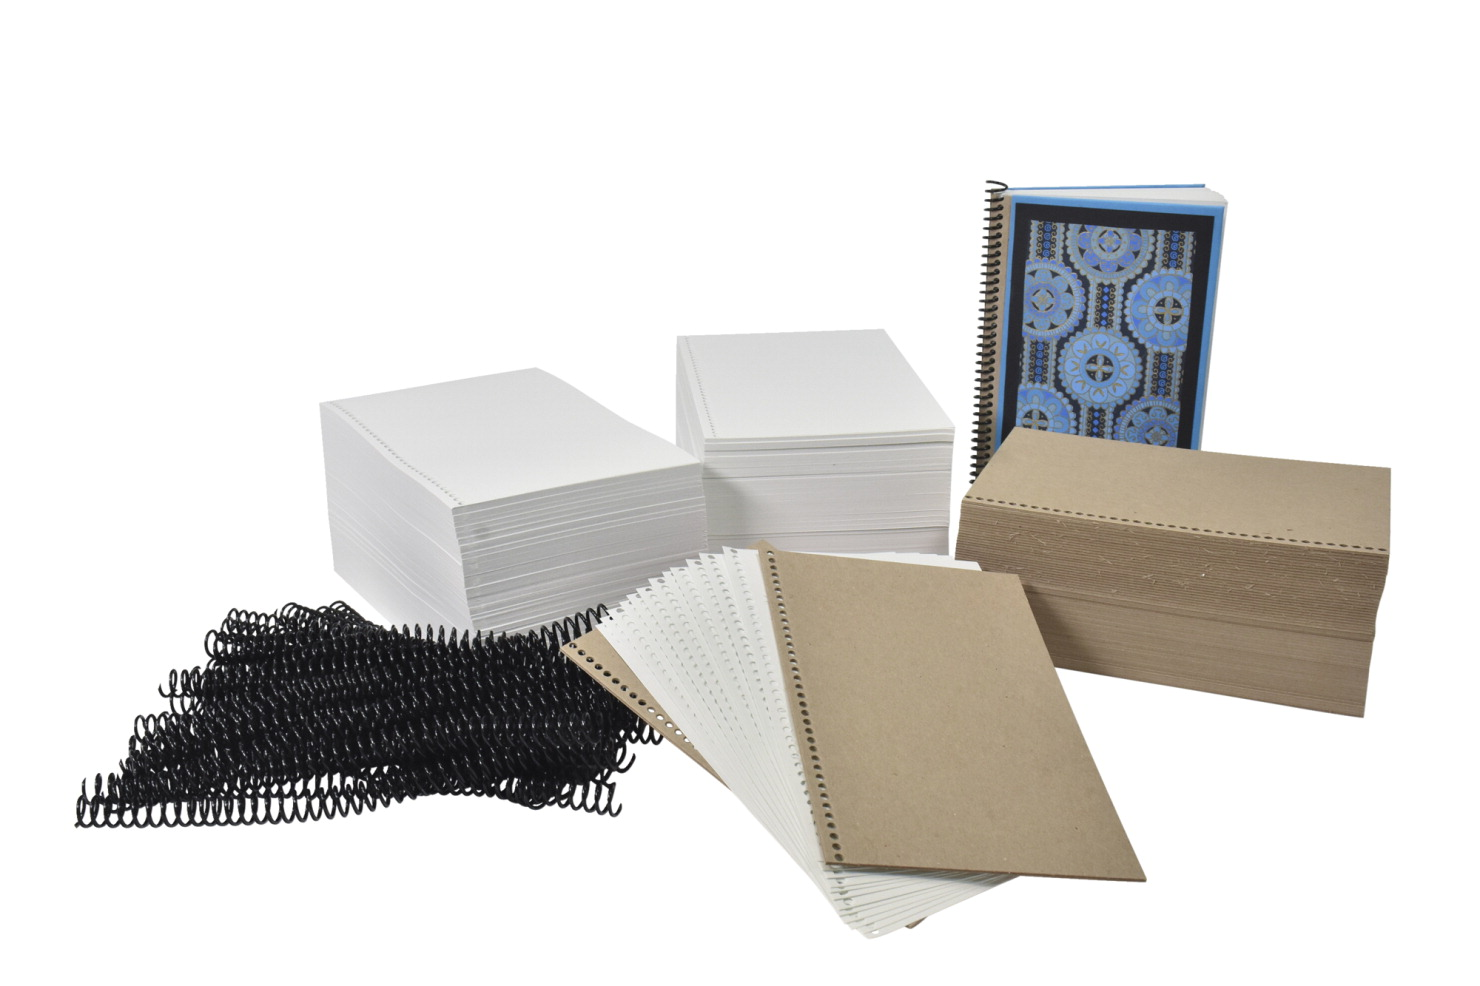 Sax Spiralbound Sketchbook and Journal Making Kit, 1090 Pieces